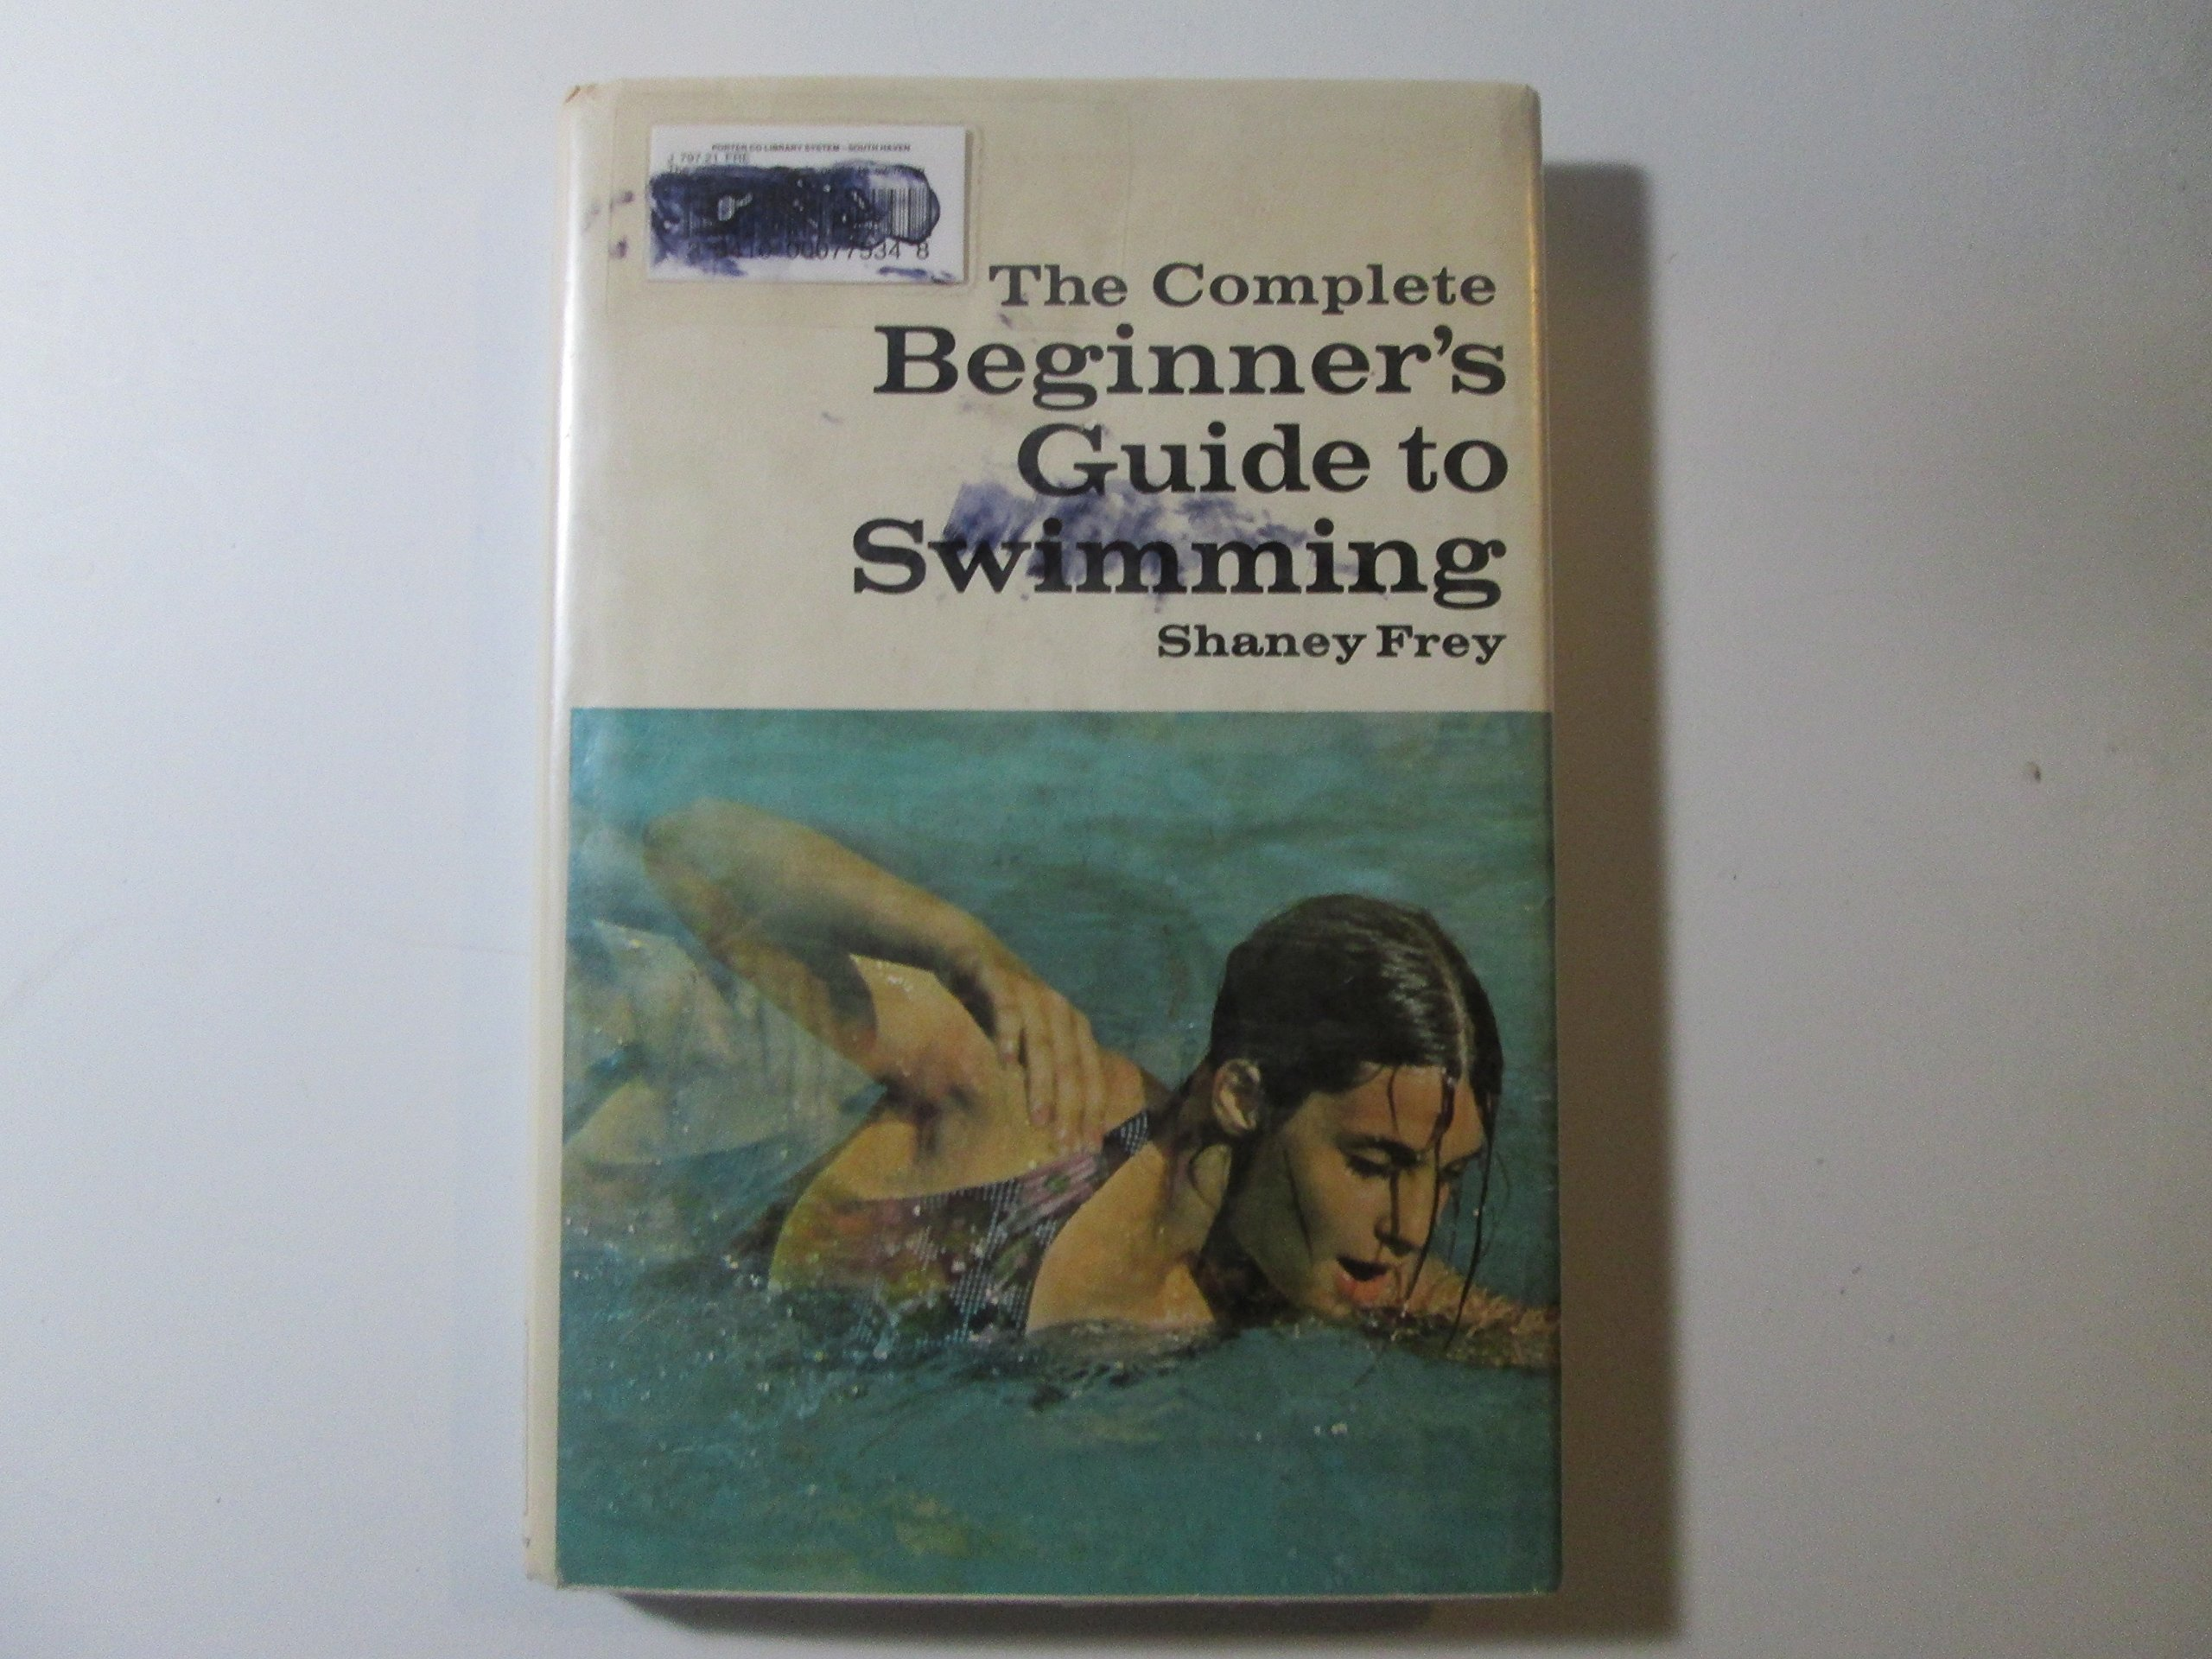 The Complete Beginner's Guide to Swimming